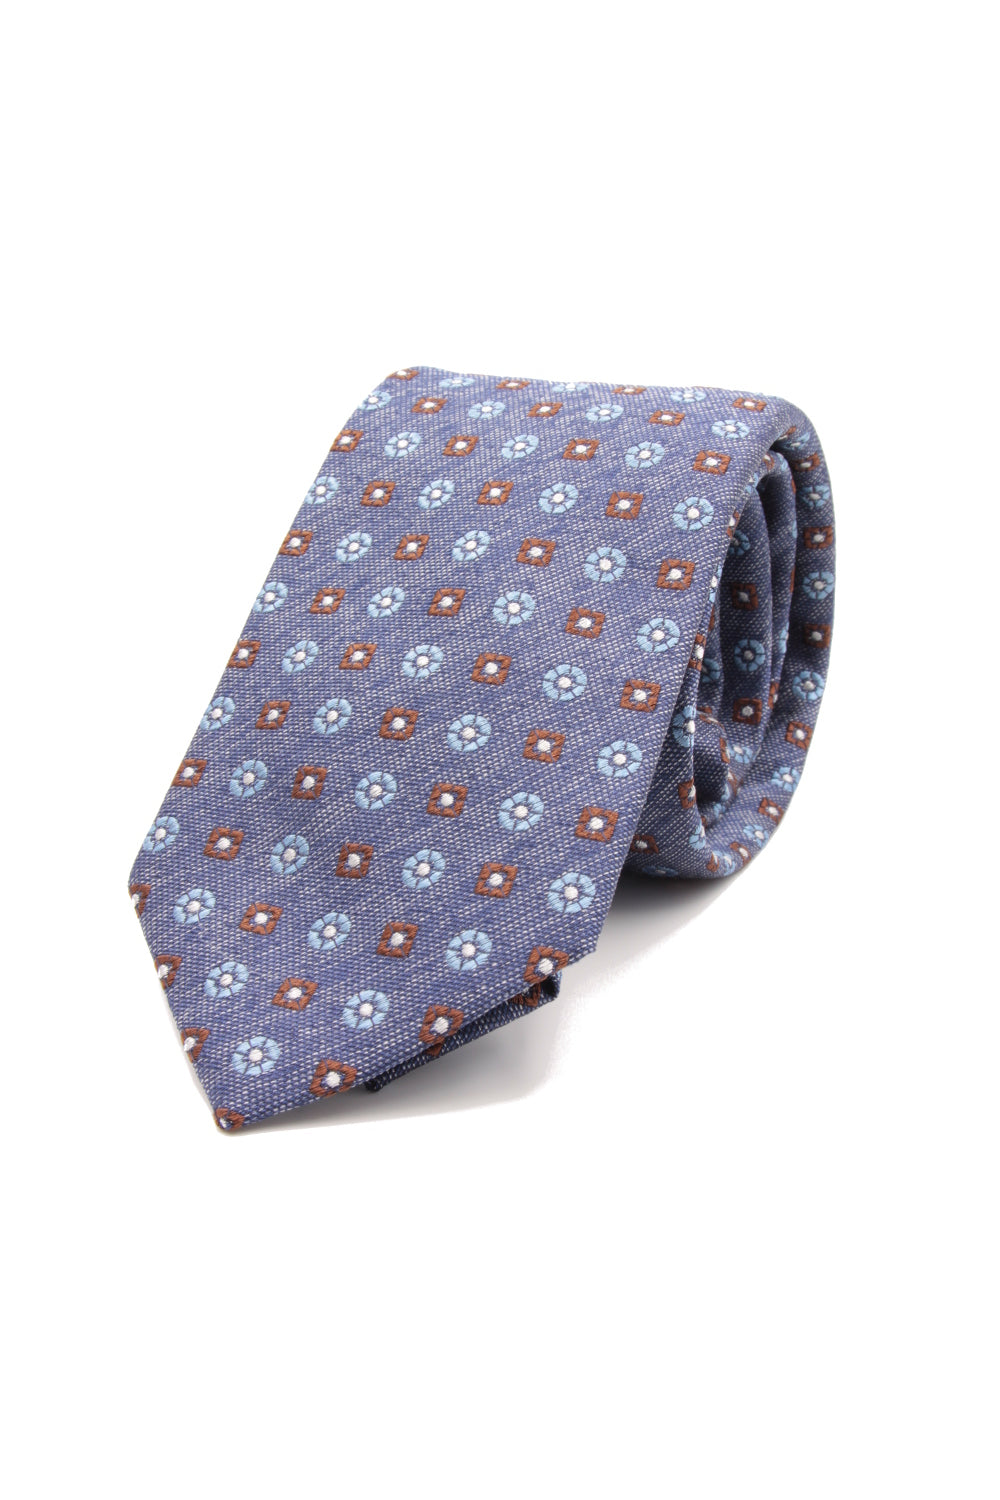 Indigo melange, brown, light blue and white floral spot tie